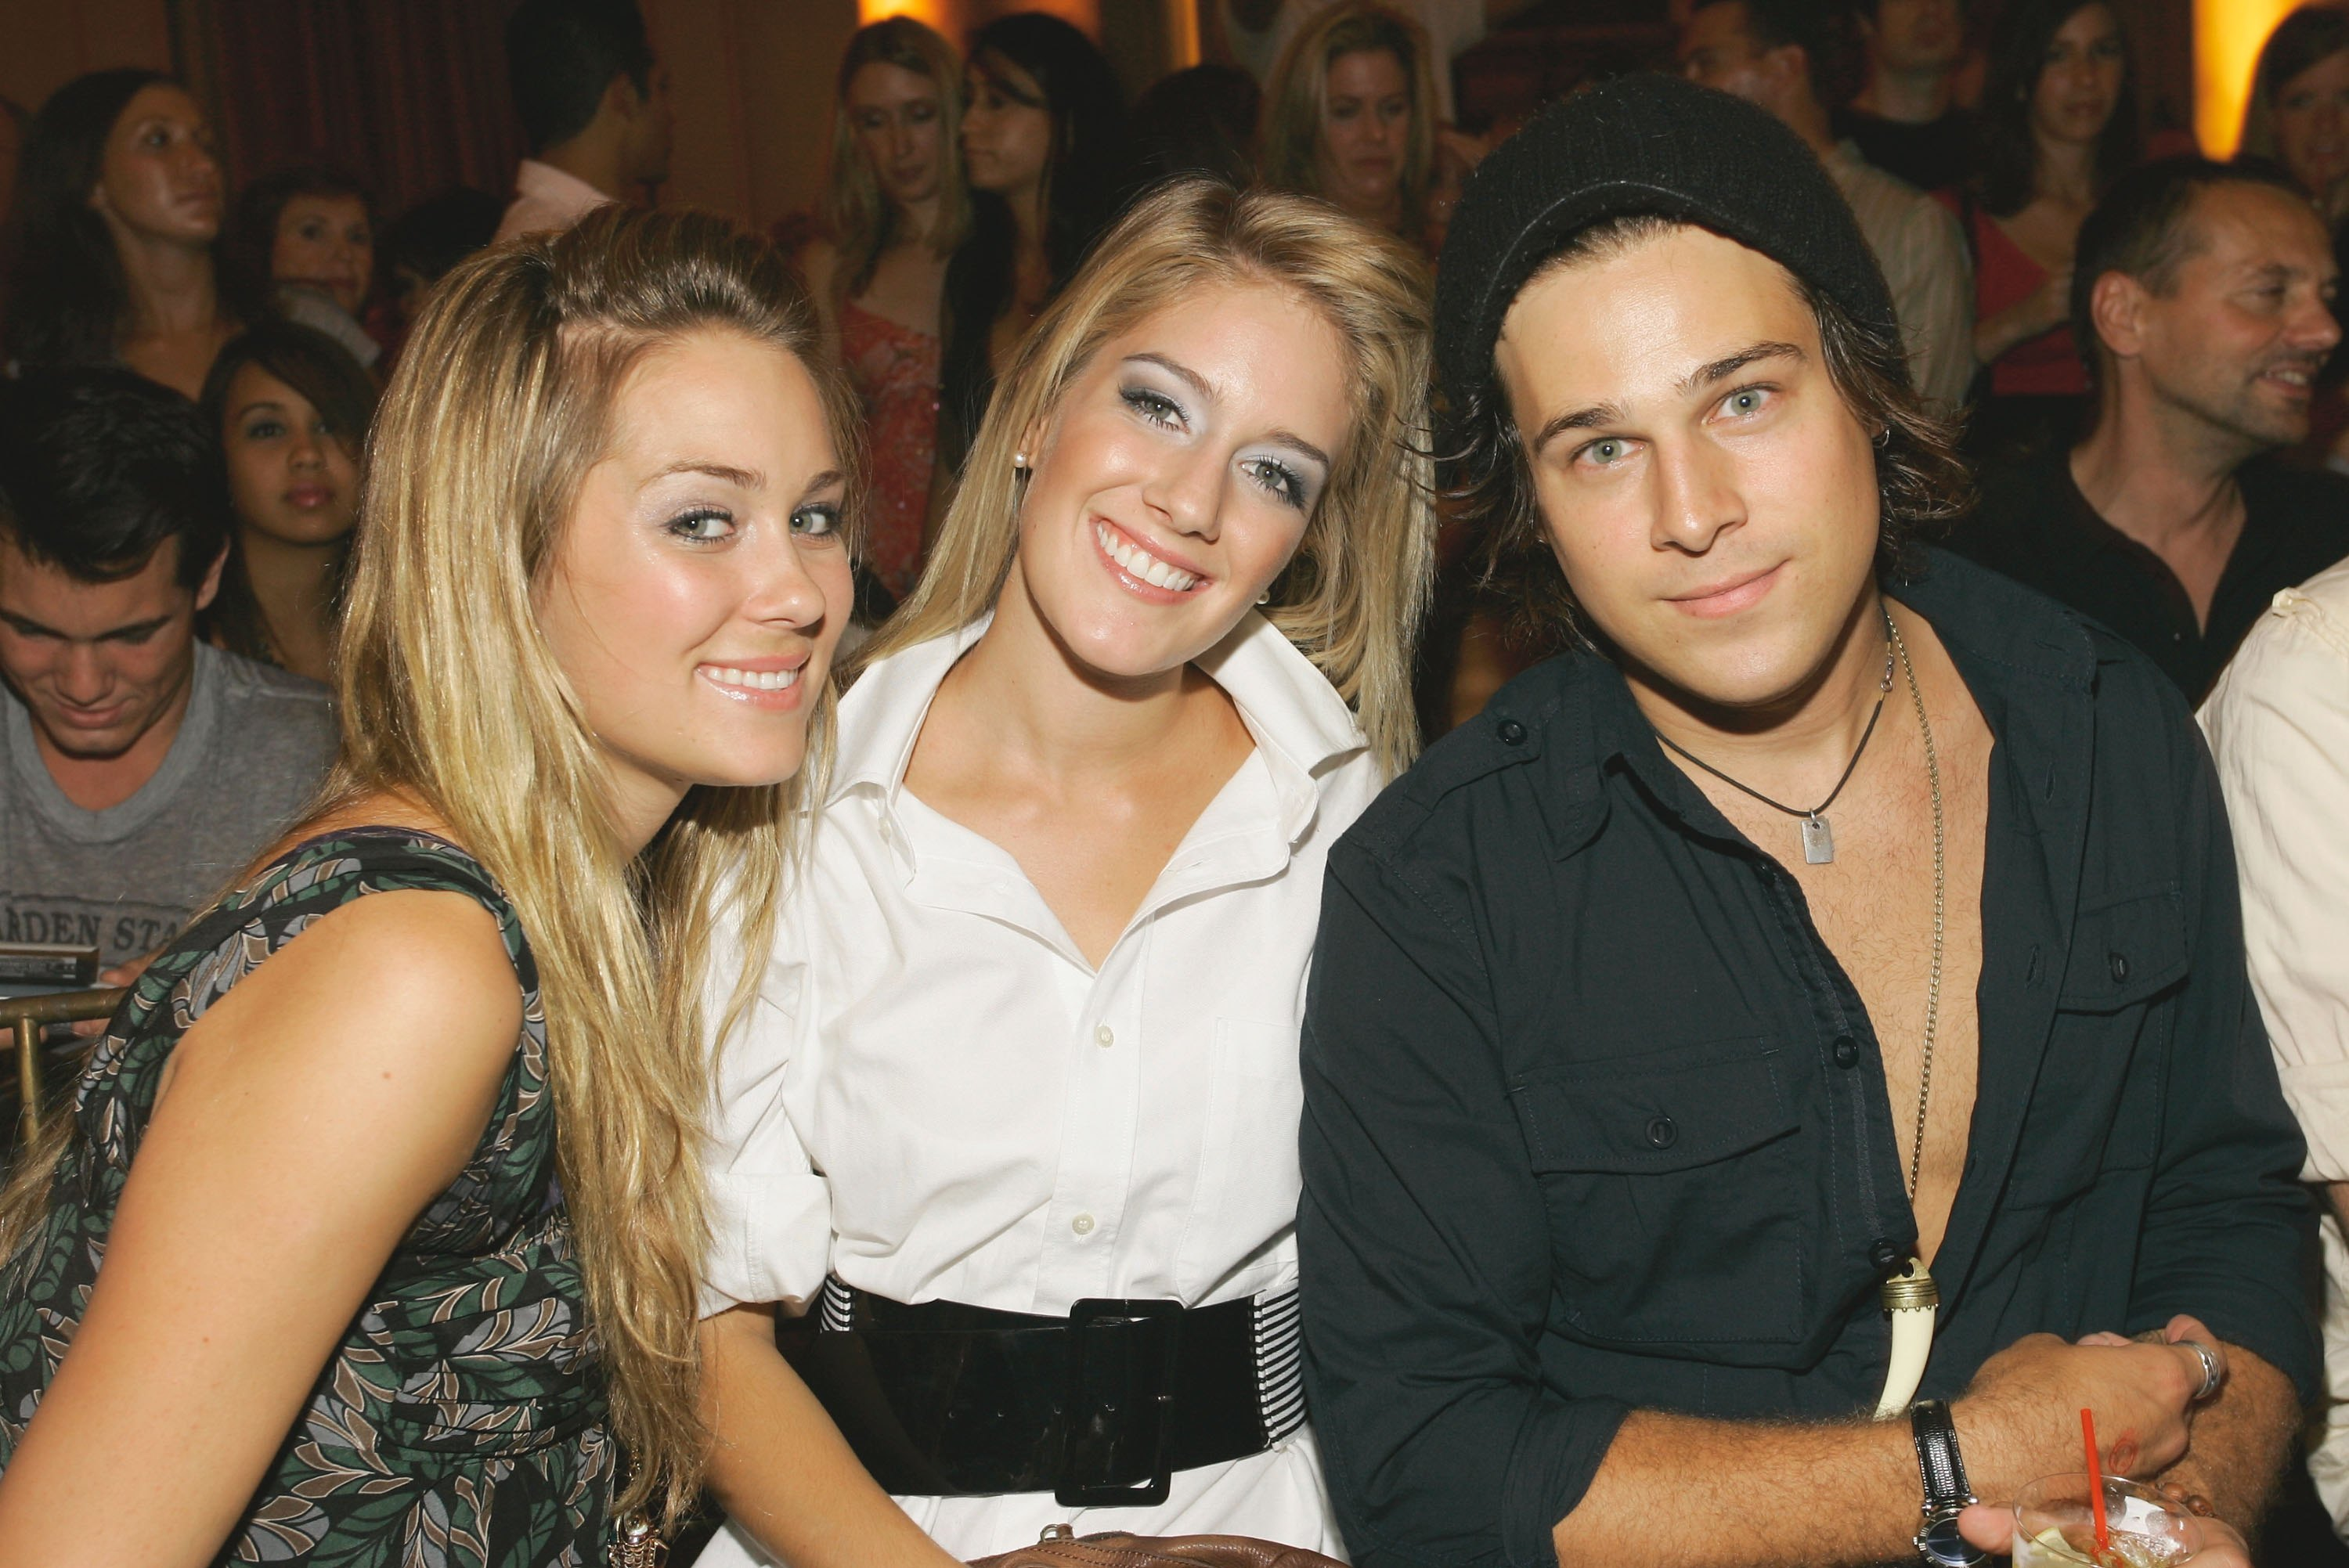 Lauren Conrad, Heidi Montag and Ryan Cabrera backstage at the Yellow Fever & Clandestine Industries Spring 2007 fashion show in New York City on Sept. 9, 2006.